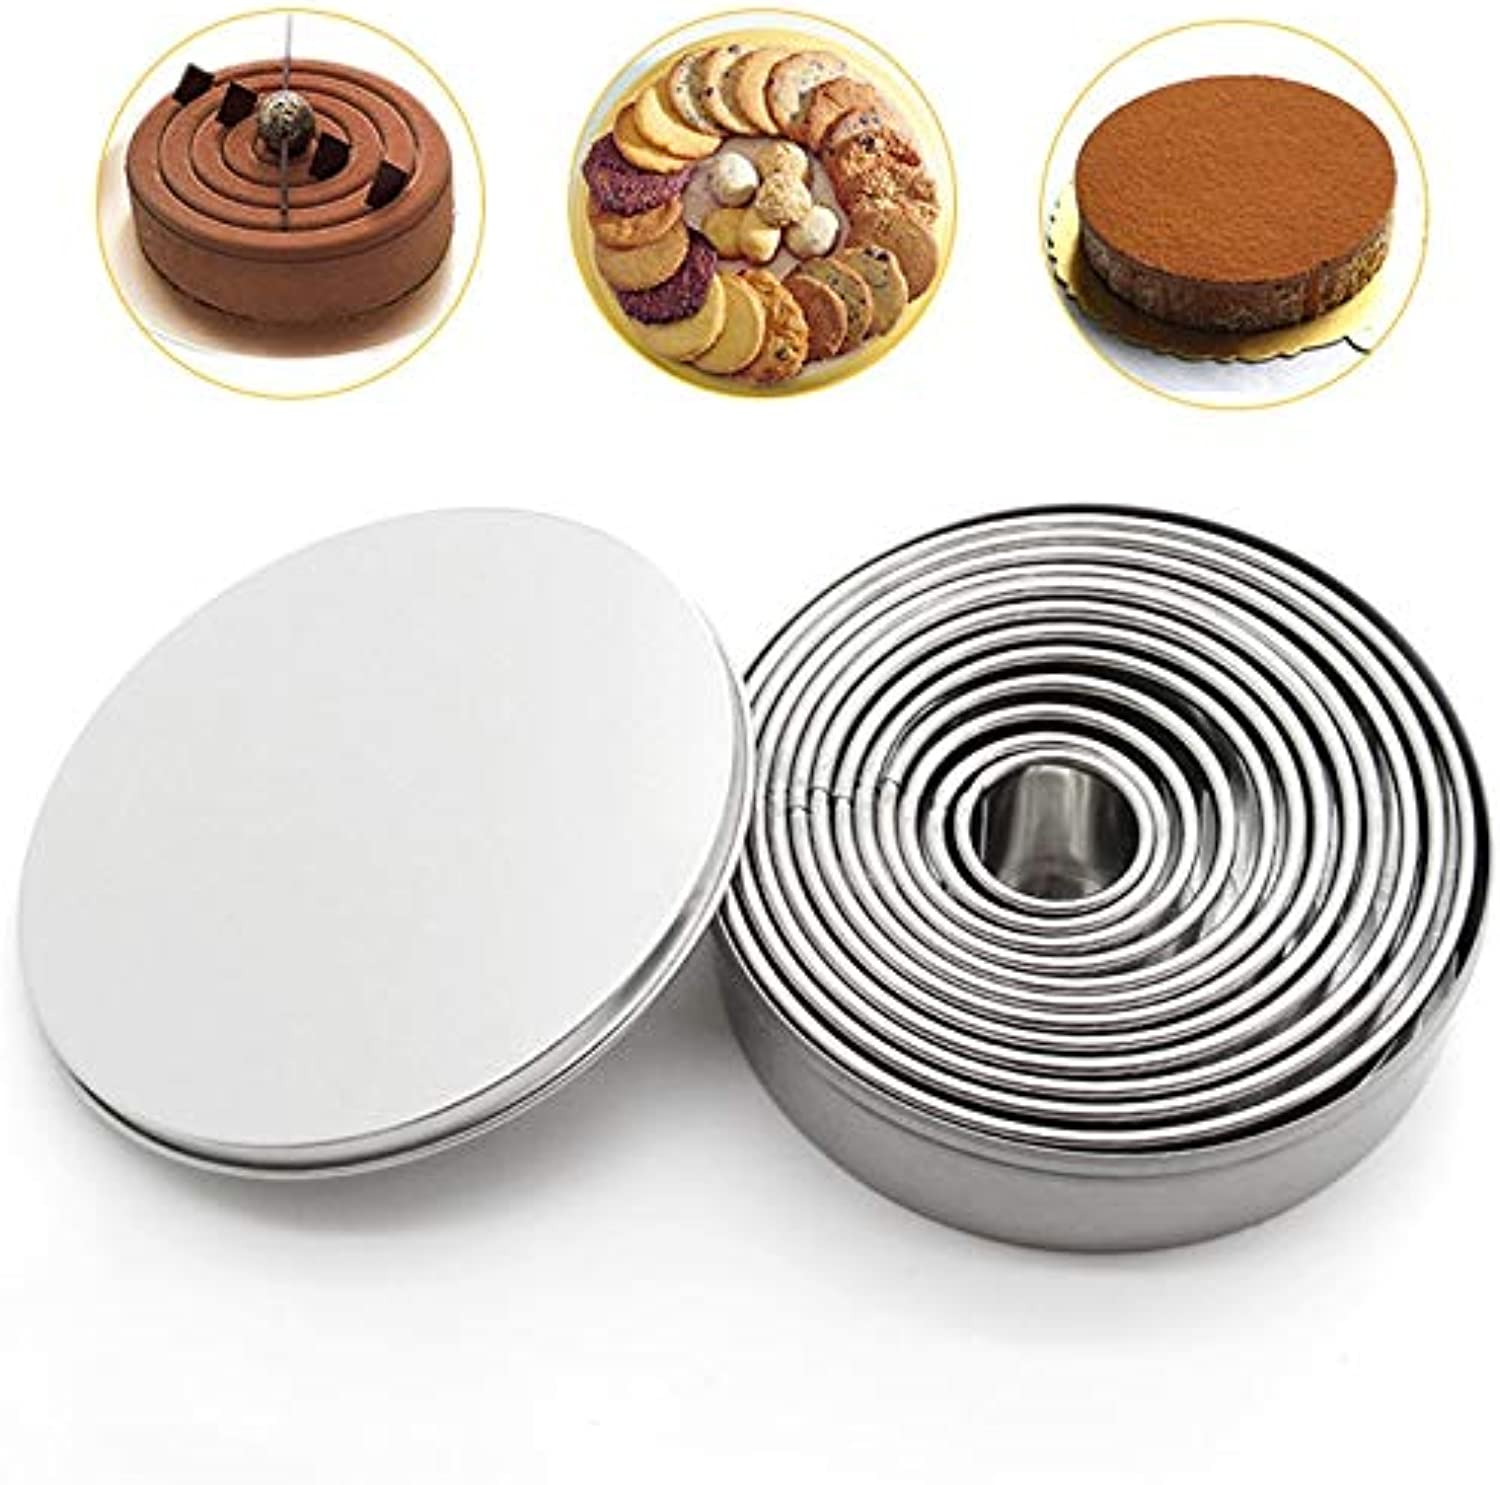 Farmerly 12Pcs Set Stainless Steel Cookie Cutter Cake Decoration Molds Biscuit Cookie Presser Mousse Cake Ring Baking Tool